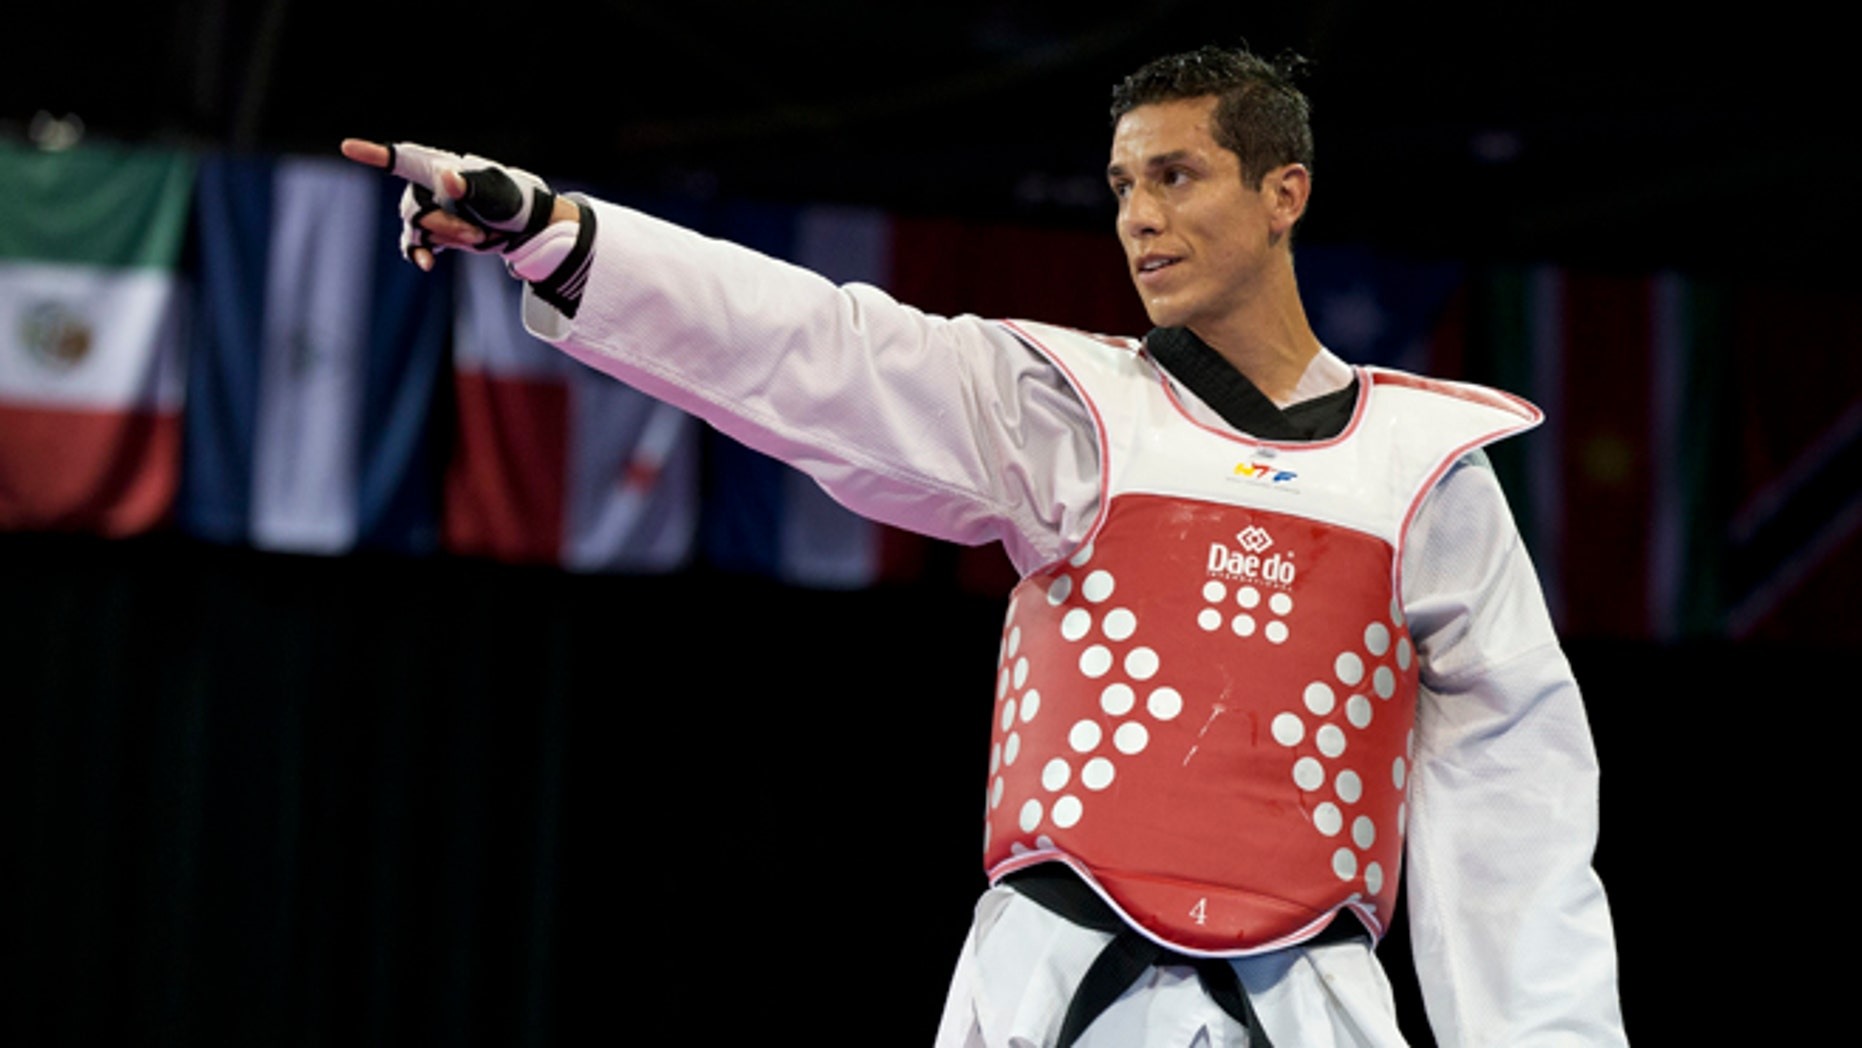 FILE - In this July 21, 2015 file photo, United States' Steven Lopez celebrates winning a bronze medal by defeating Venezuela's Javier Medina in the men's taekwondo under-80kg category at the Pan Am Games in Mississauga, Ontario. Lopez is competing on the Olympic stage for the fifth time, at the Summer Games in Rio de Janeiro, Brazil, where he's looking to add a medal to the ones he claimed in 2000, 2004 and 2008.  (AP Photo/Rebecca Blackwell, File)